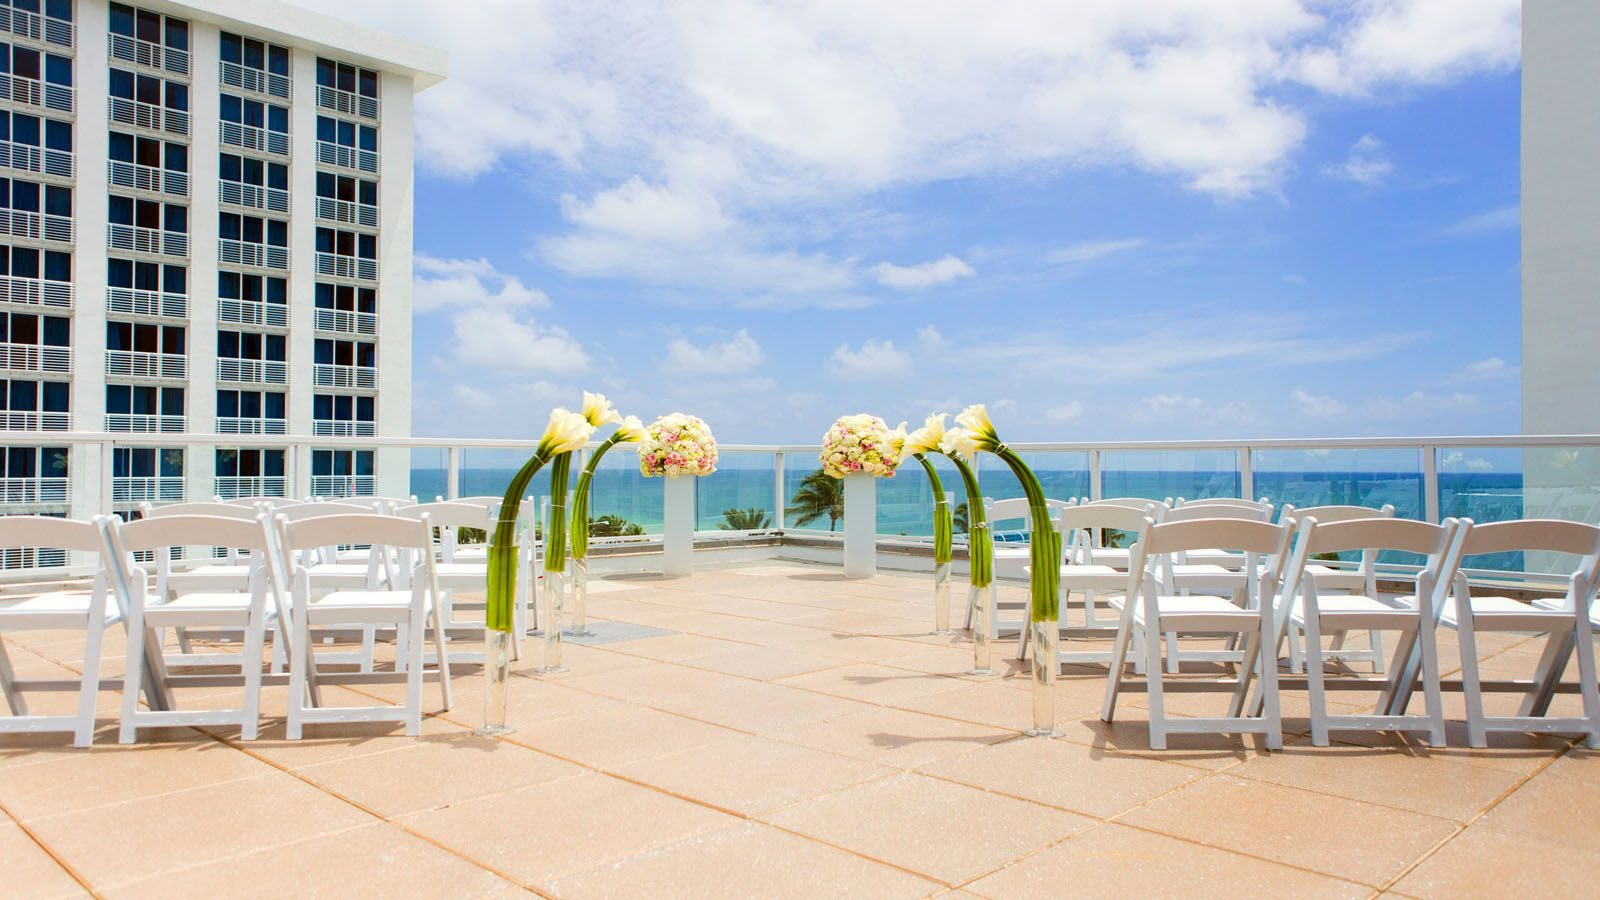 Wedding Venues In Fort Lauderale The Westin Fort Lauderdale Beach Resort Fort Lauderdale Beach Resort Wedding Venues Beach Fort Lauderdale Beach